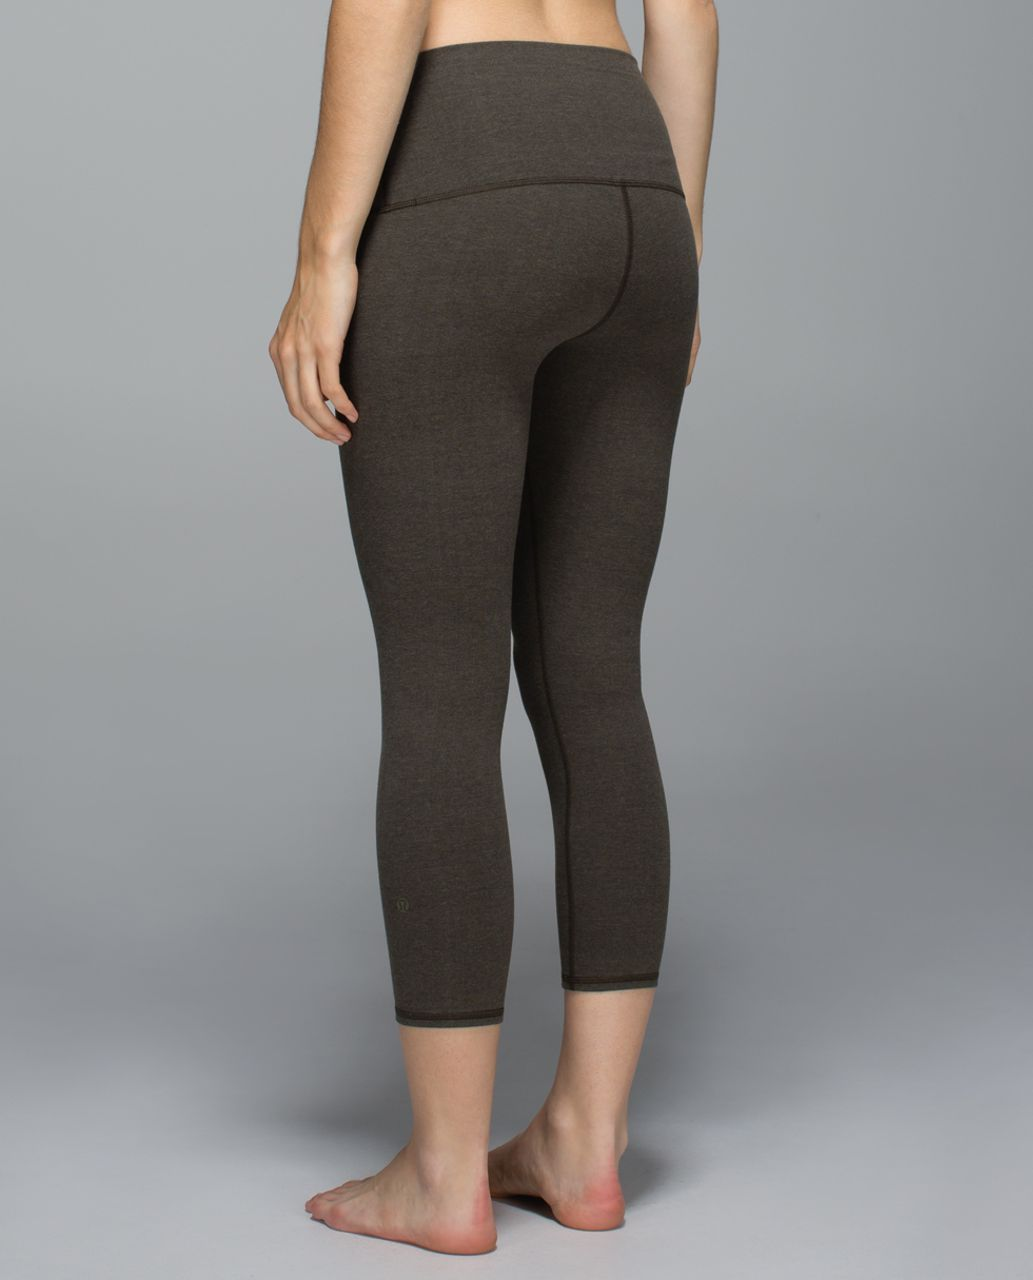 Lululemon Wunder Under Crop *Cotton (Roll Down) - Heathered Deep Camo